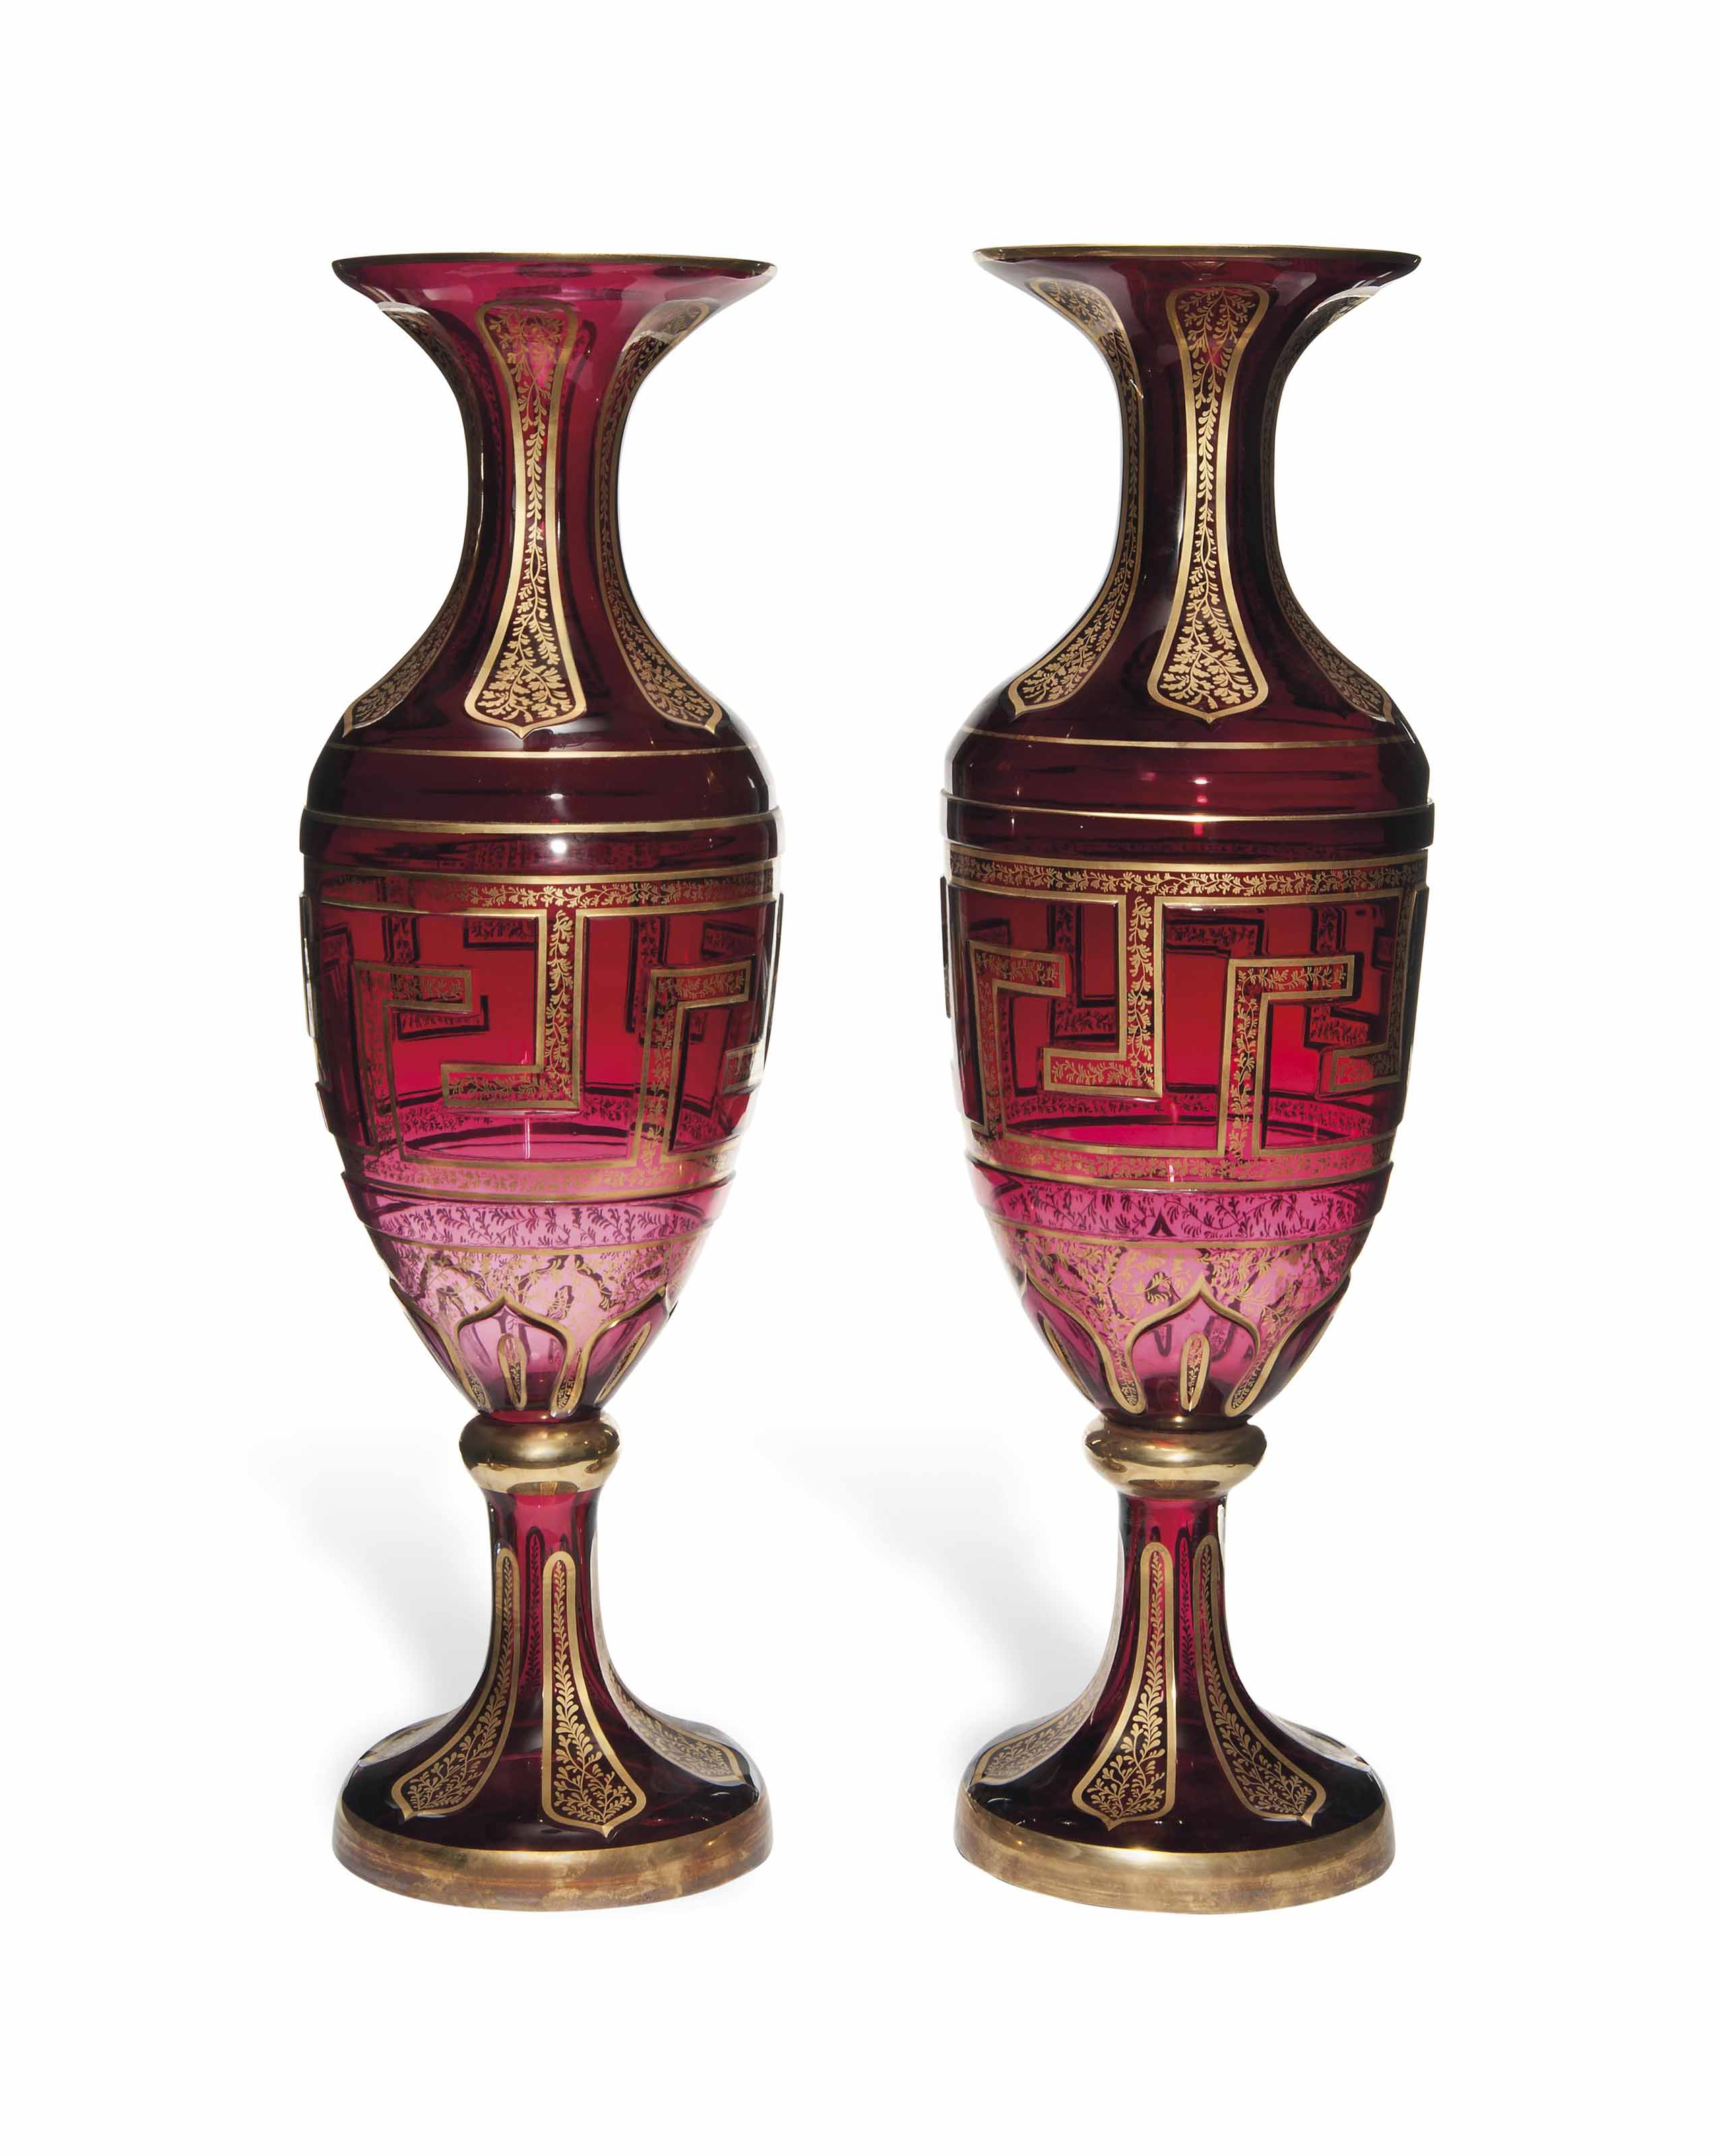 A LARGE PAIR OF RUBY CUT-GLASS